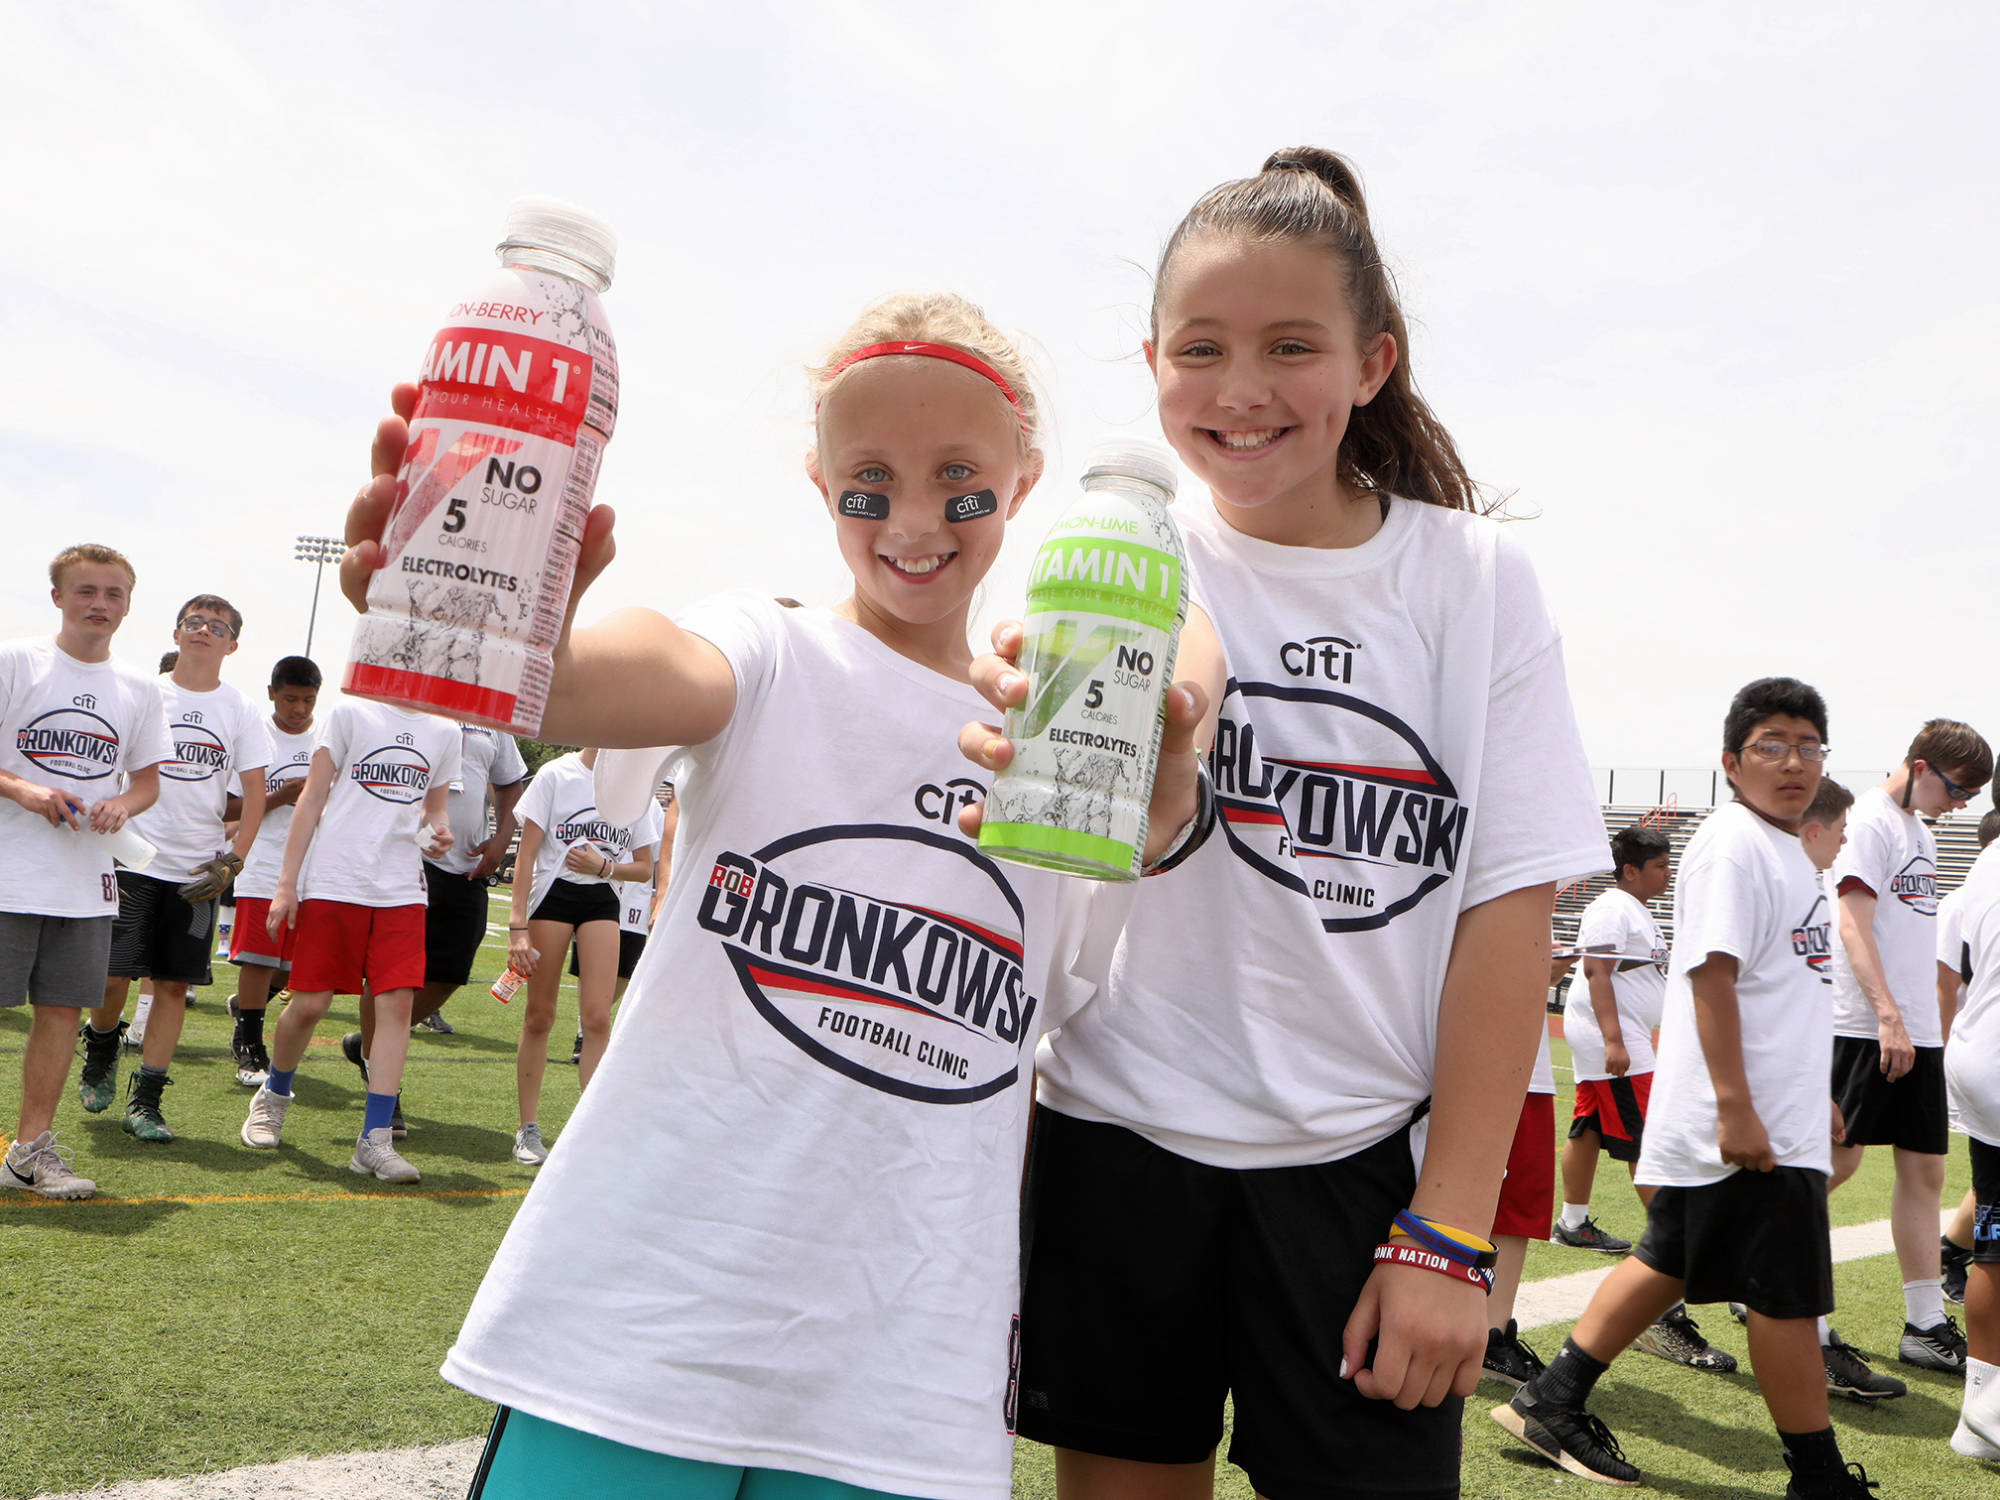 Vitamin 1 sponsor of Gronkowski Football Clinic 17